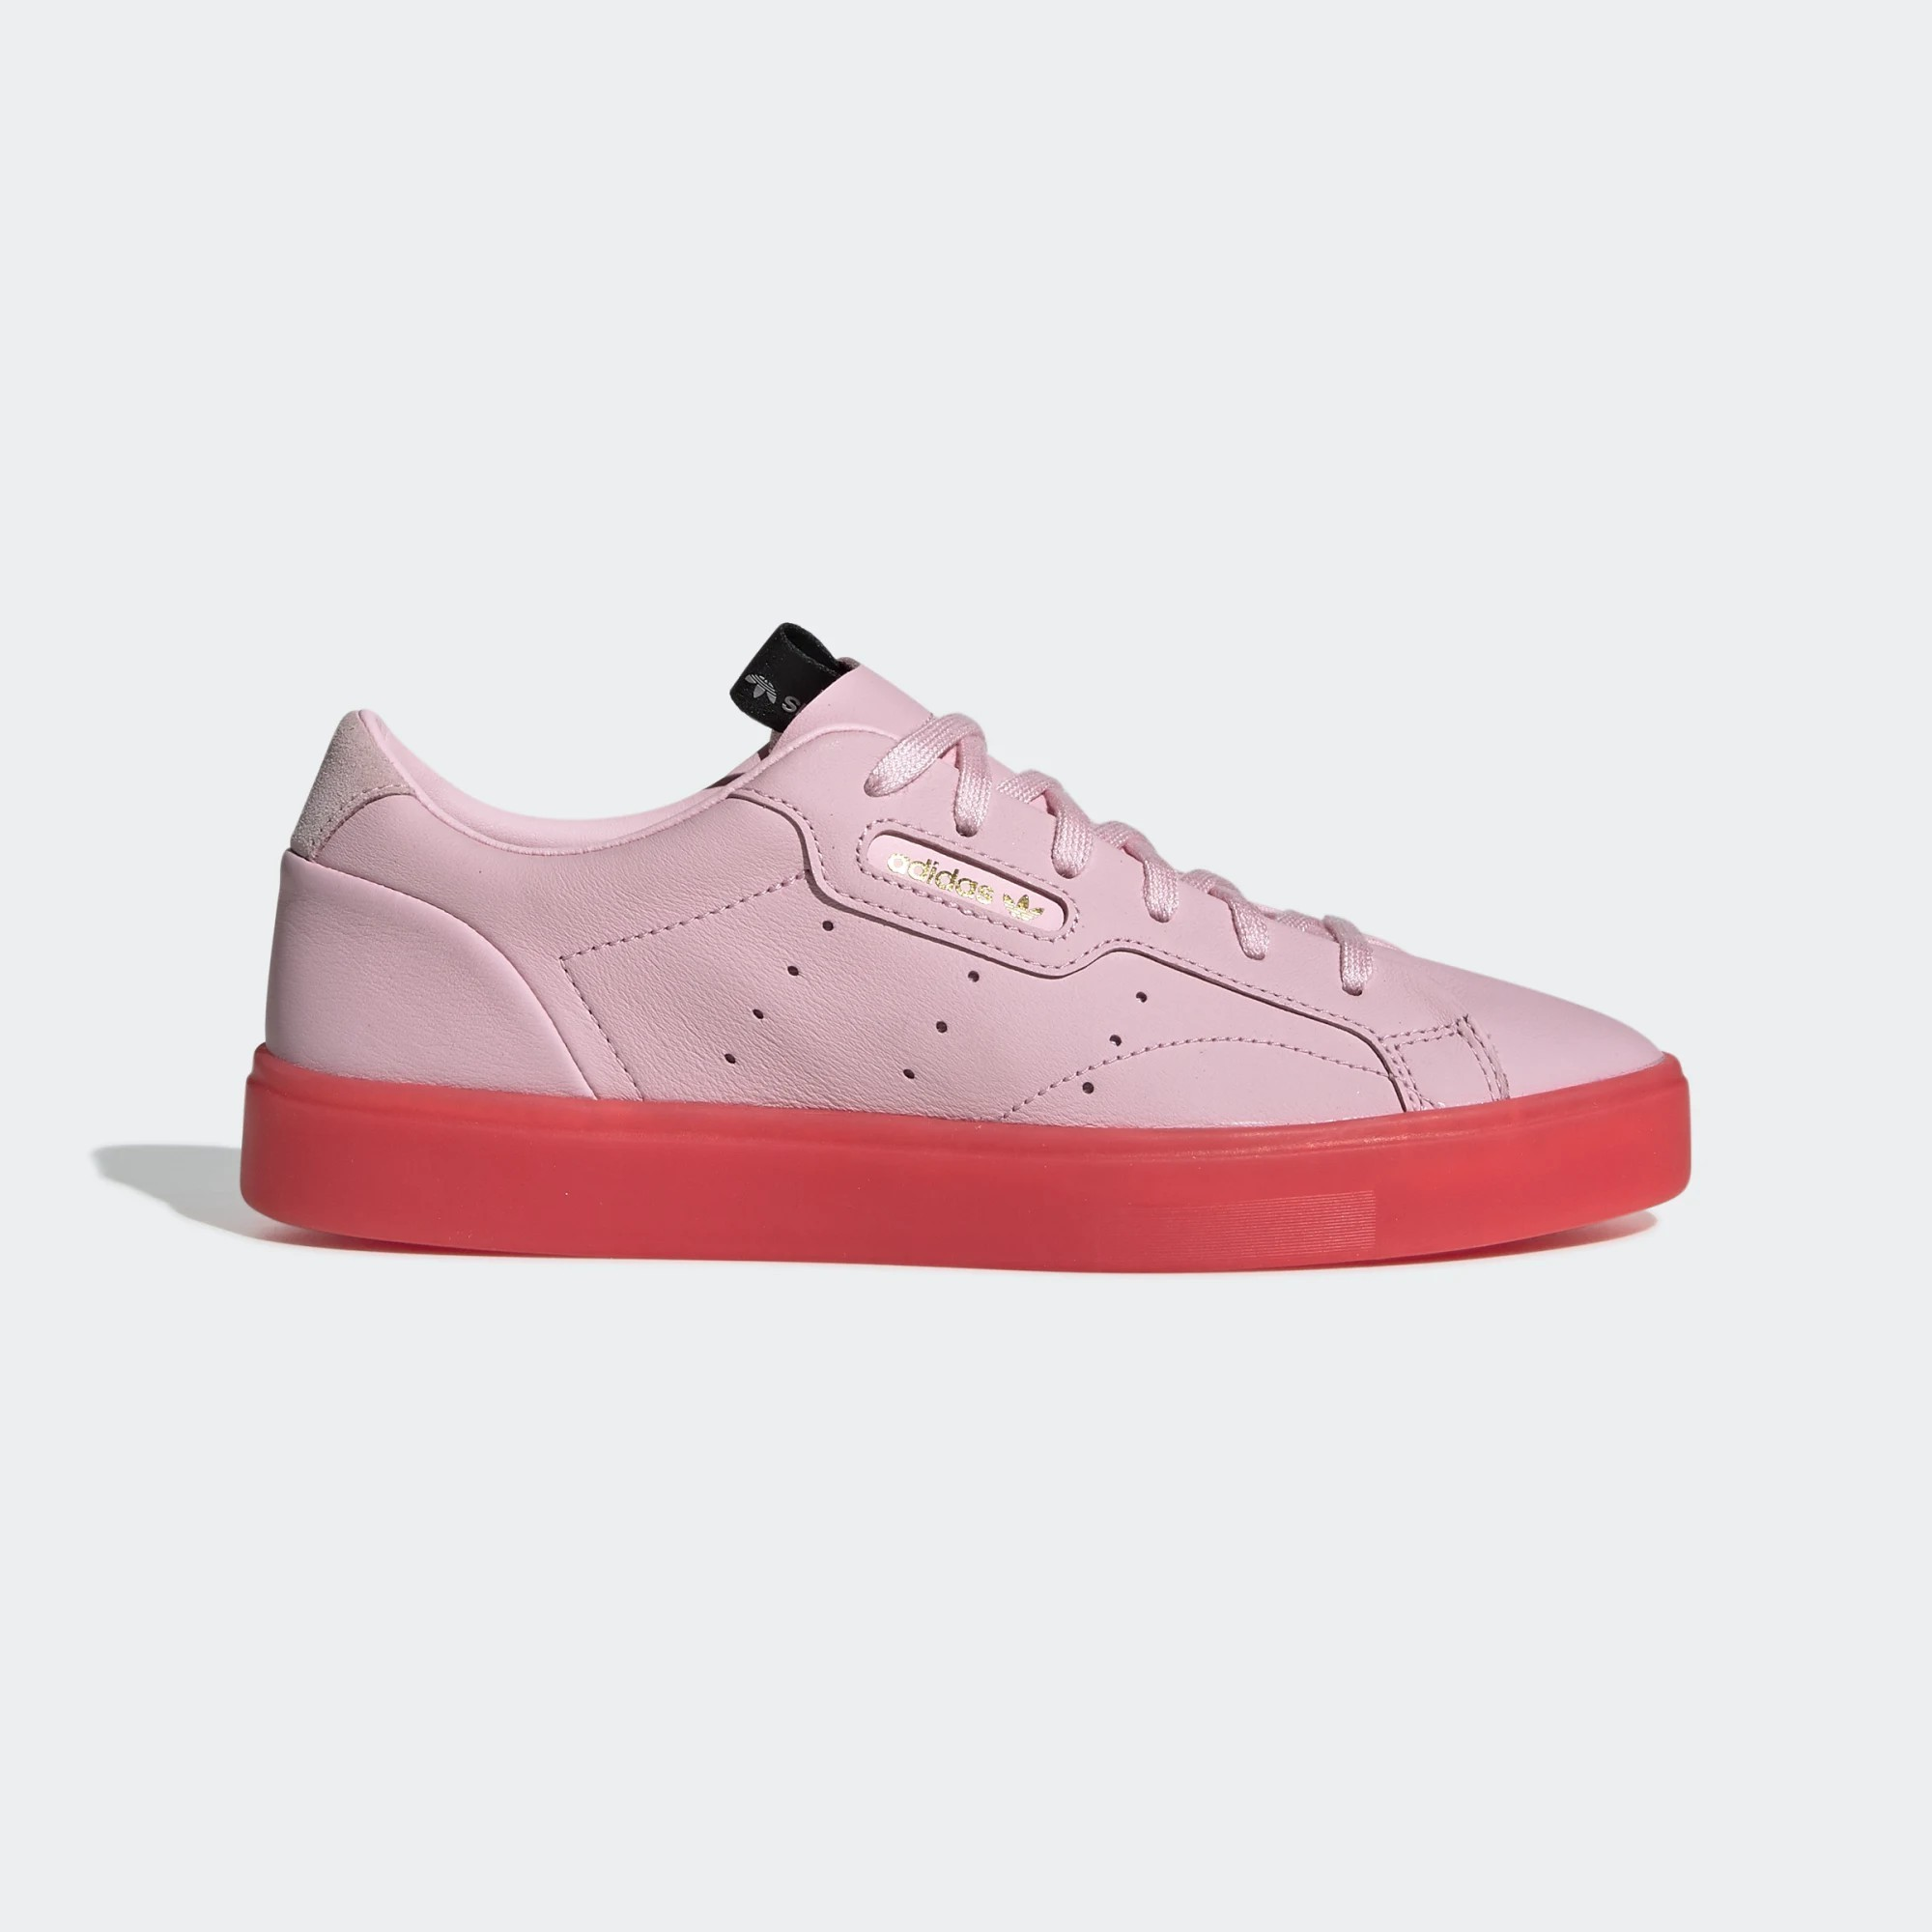 adidas Sleek W Pink/Red BD7475